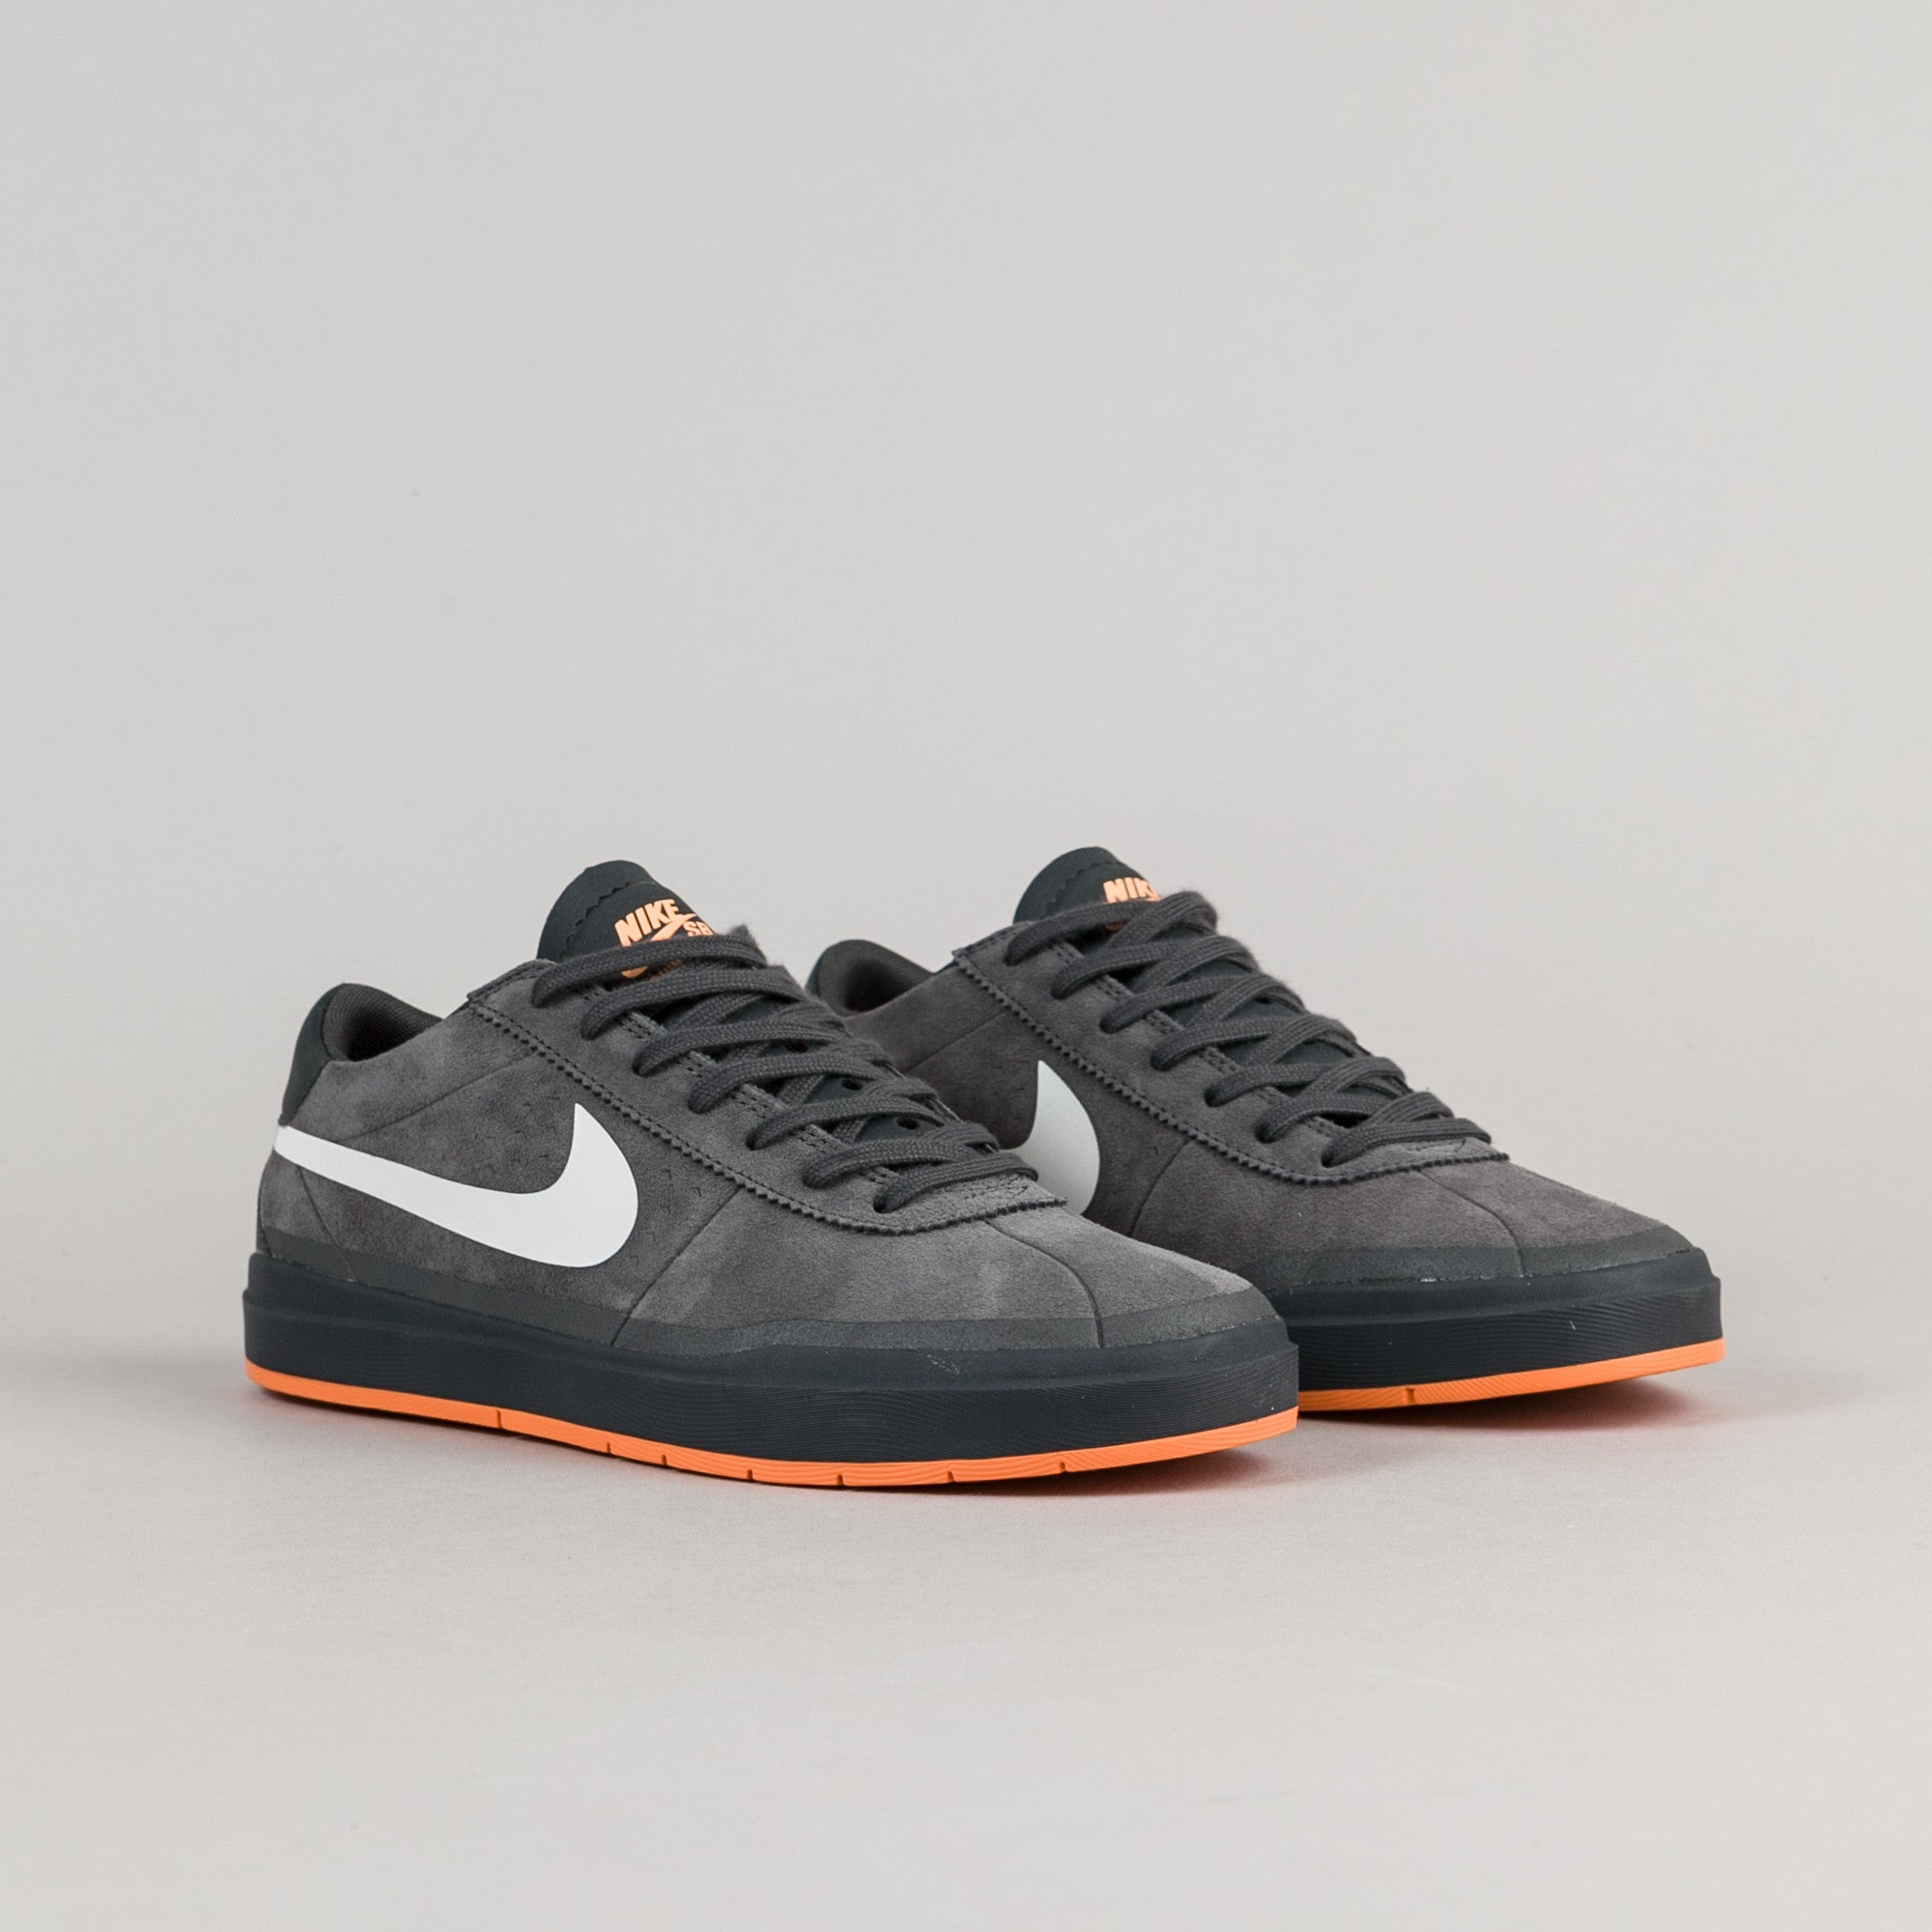 Nike SB Bruin Hyperfeel XT Shoes - Anthracite / White - Clay Orange